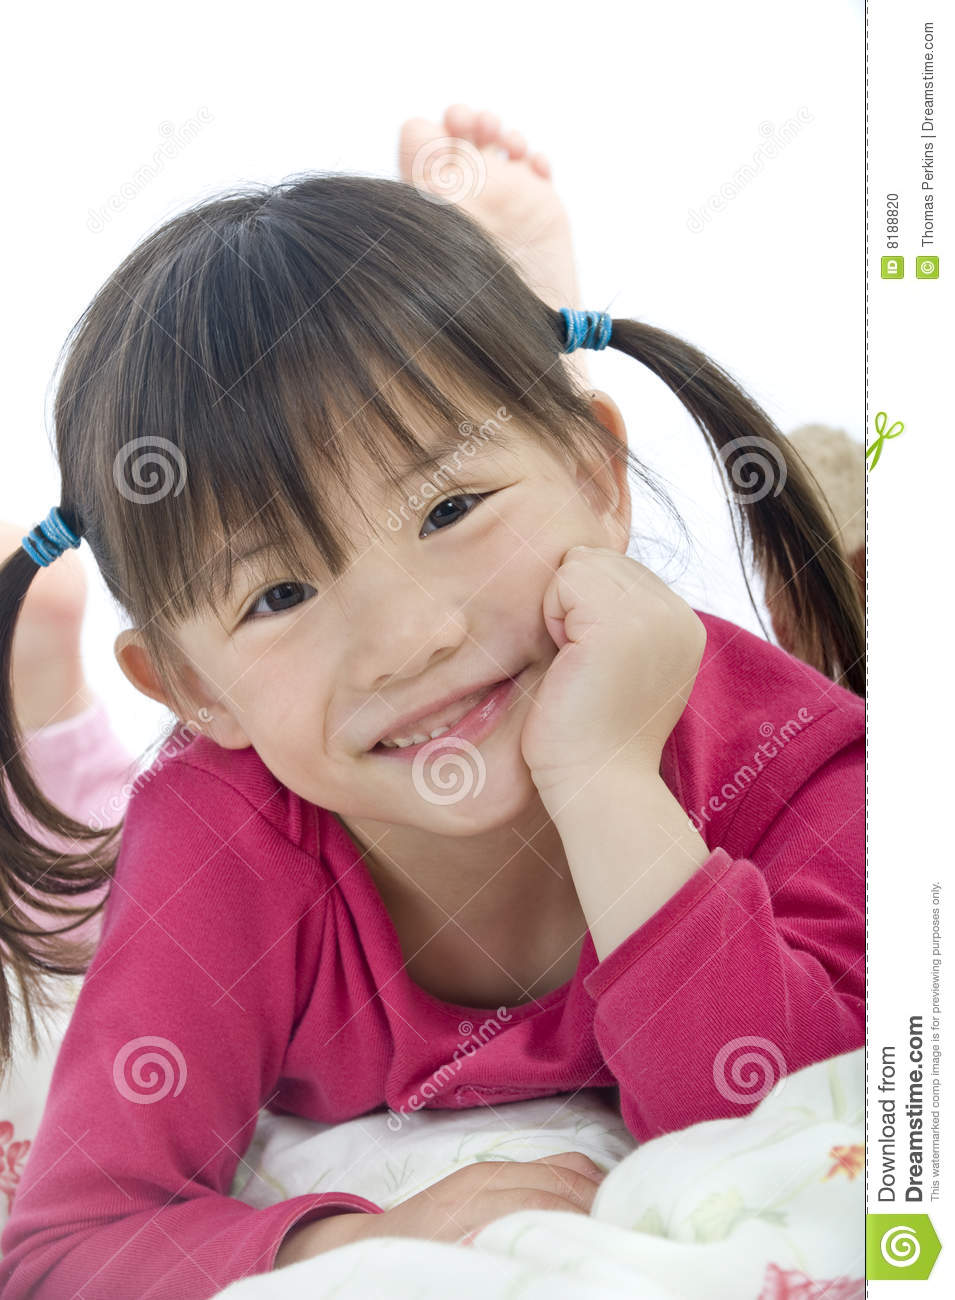 More similar stock images of ` Young Asian Girl `